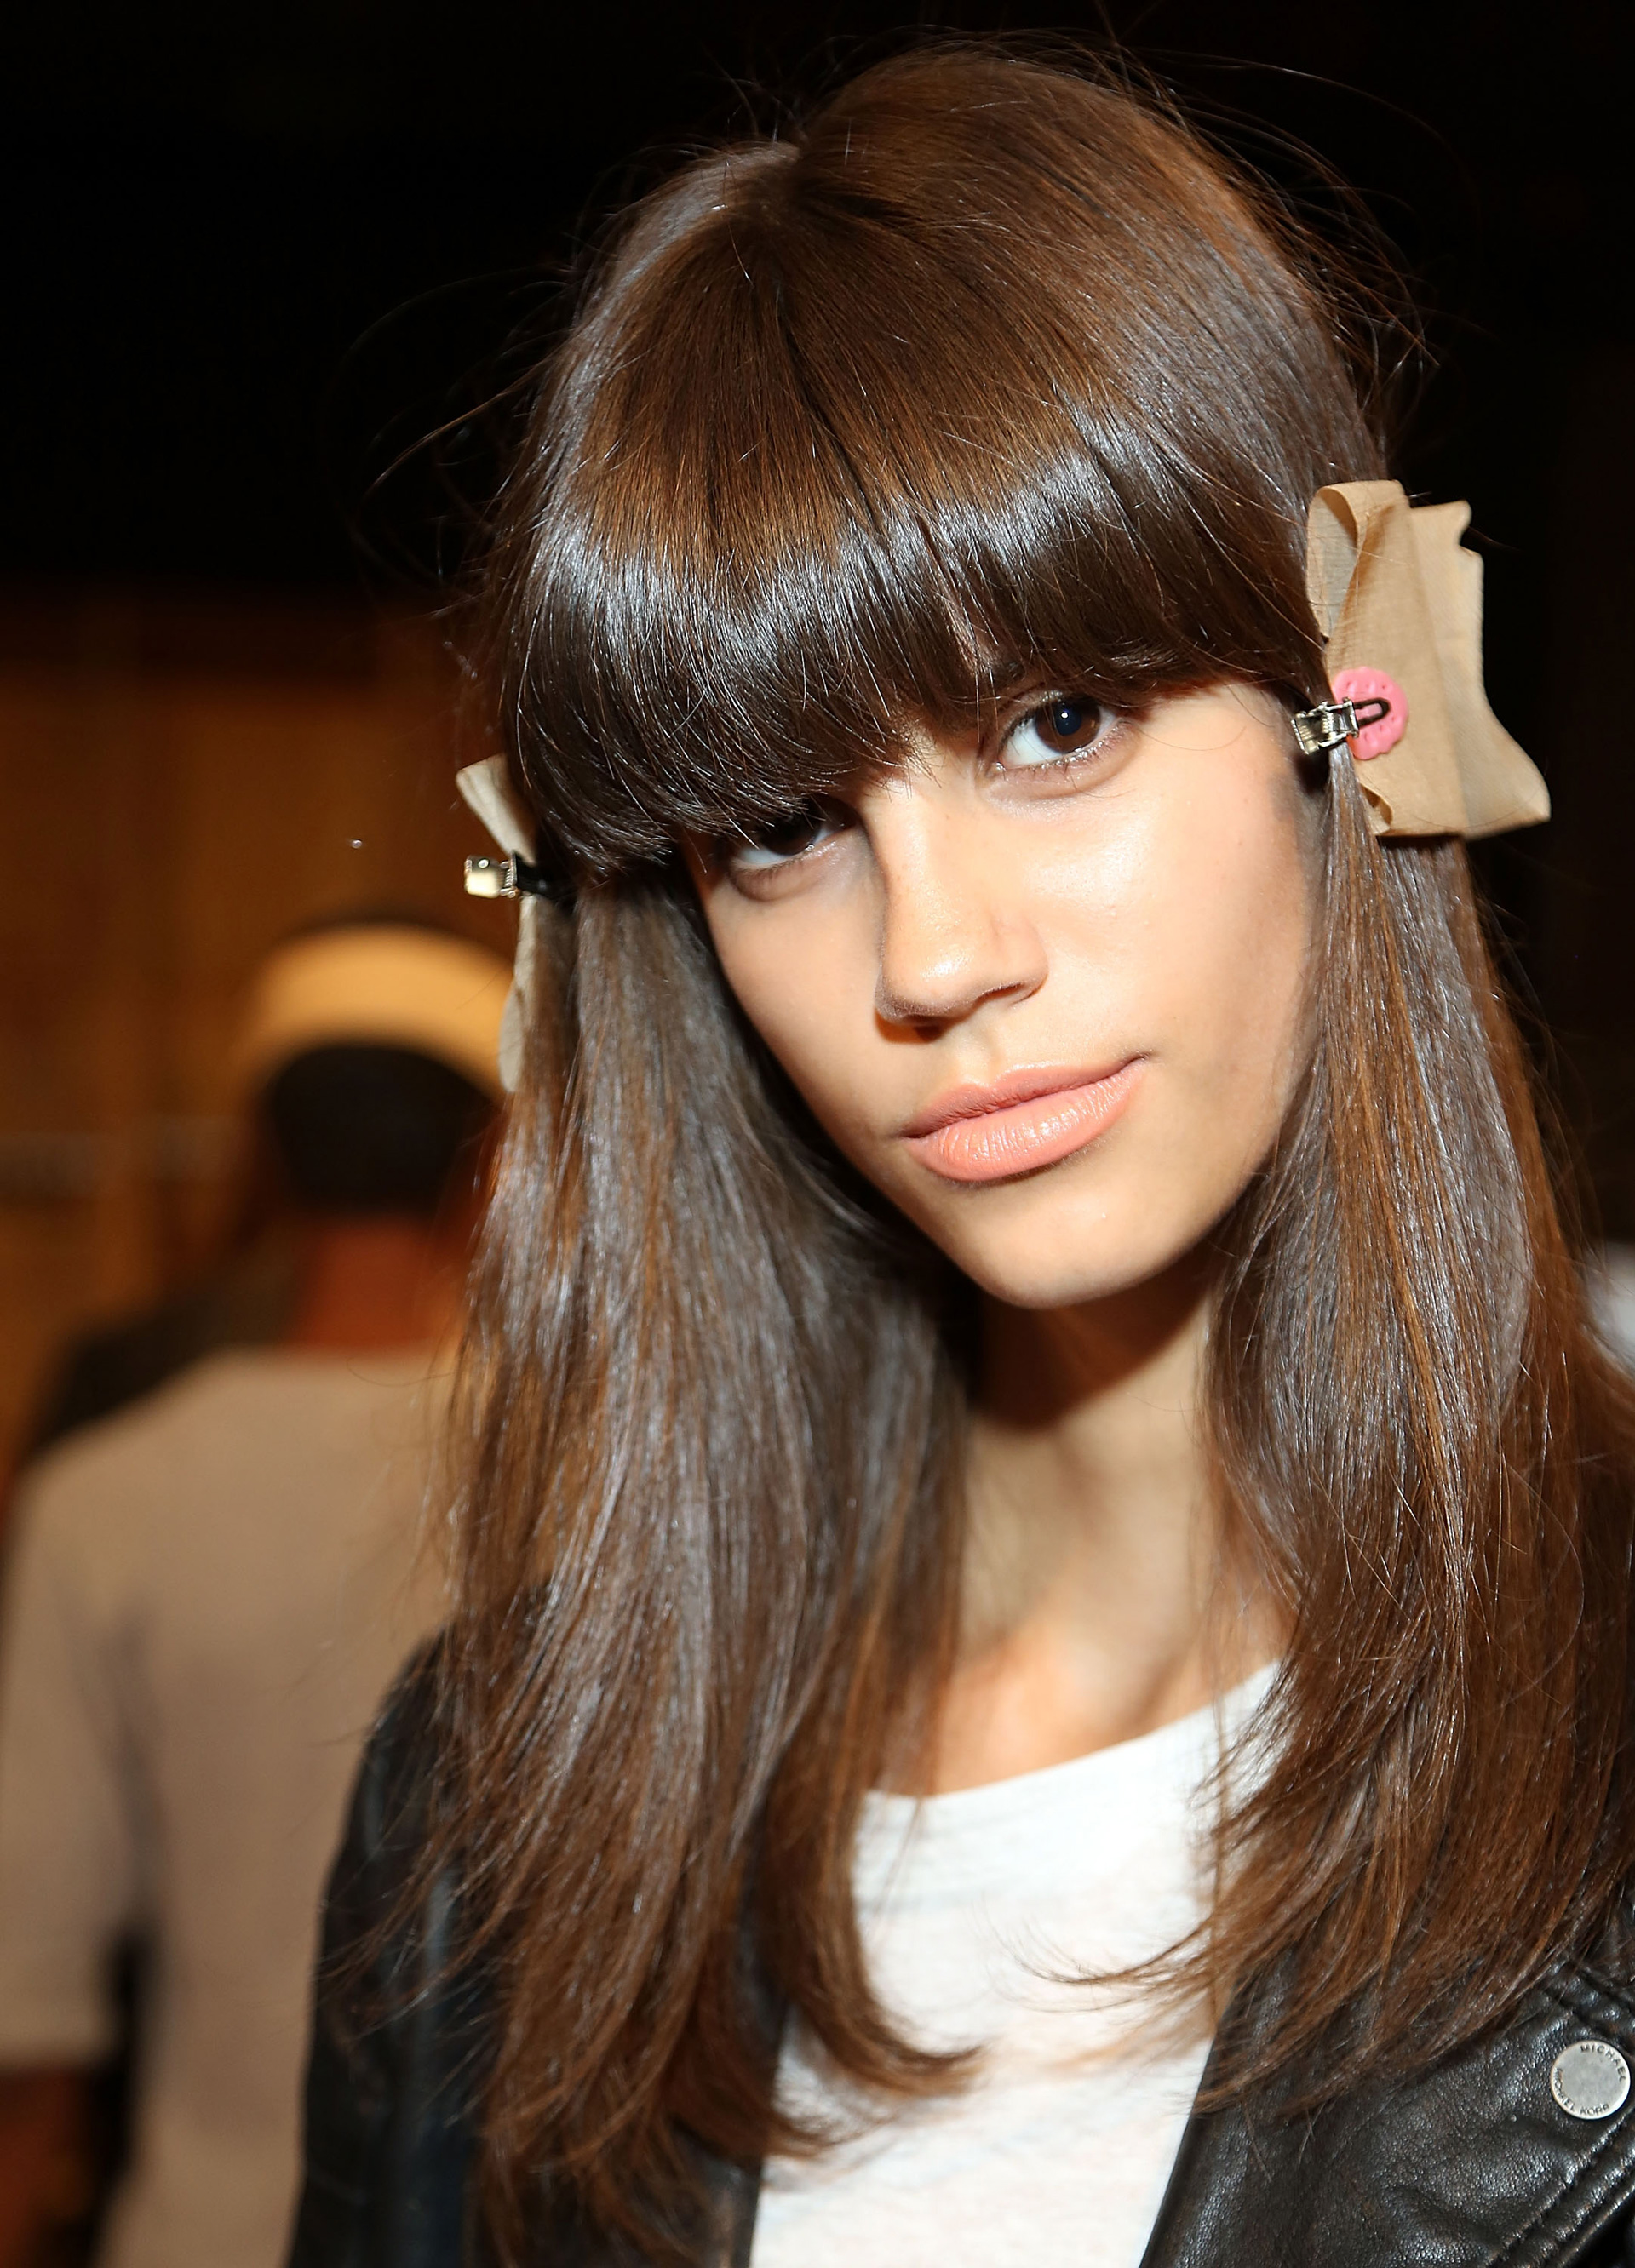 Over-the-top hair accessories